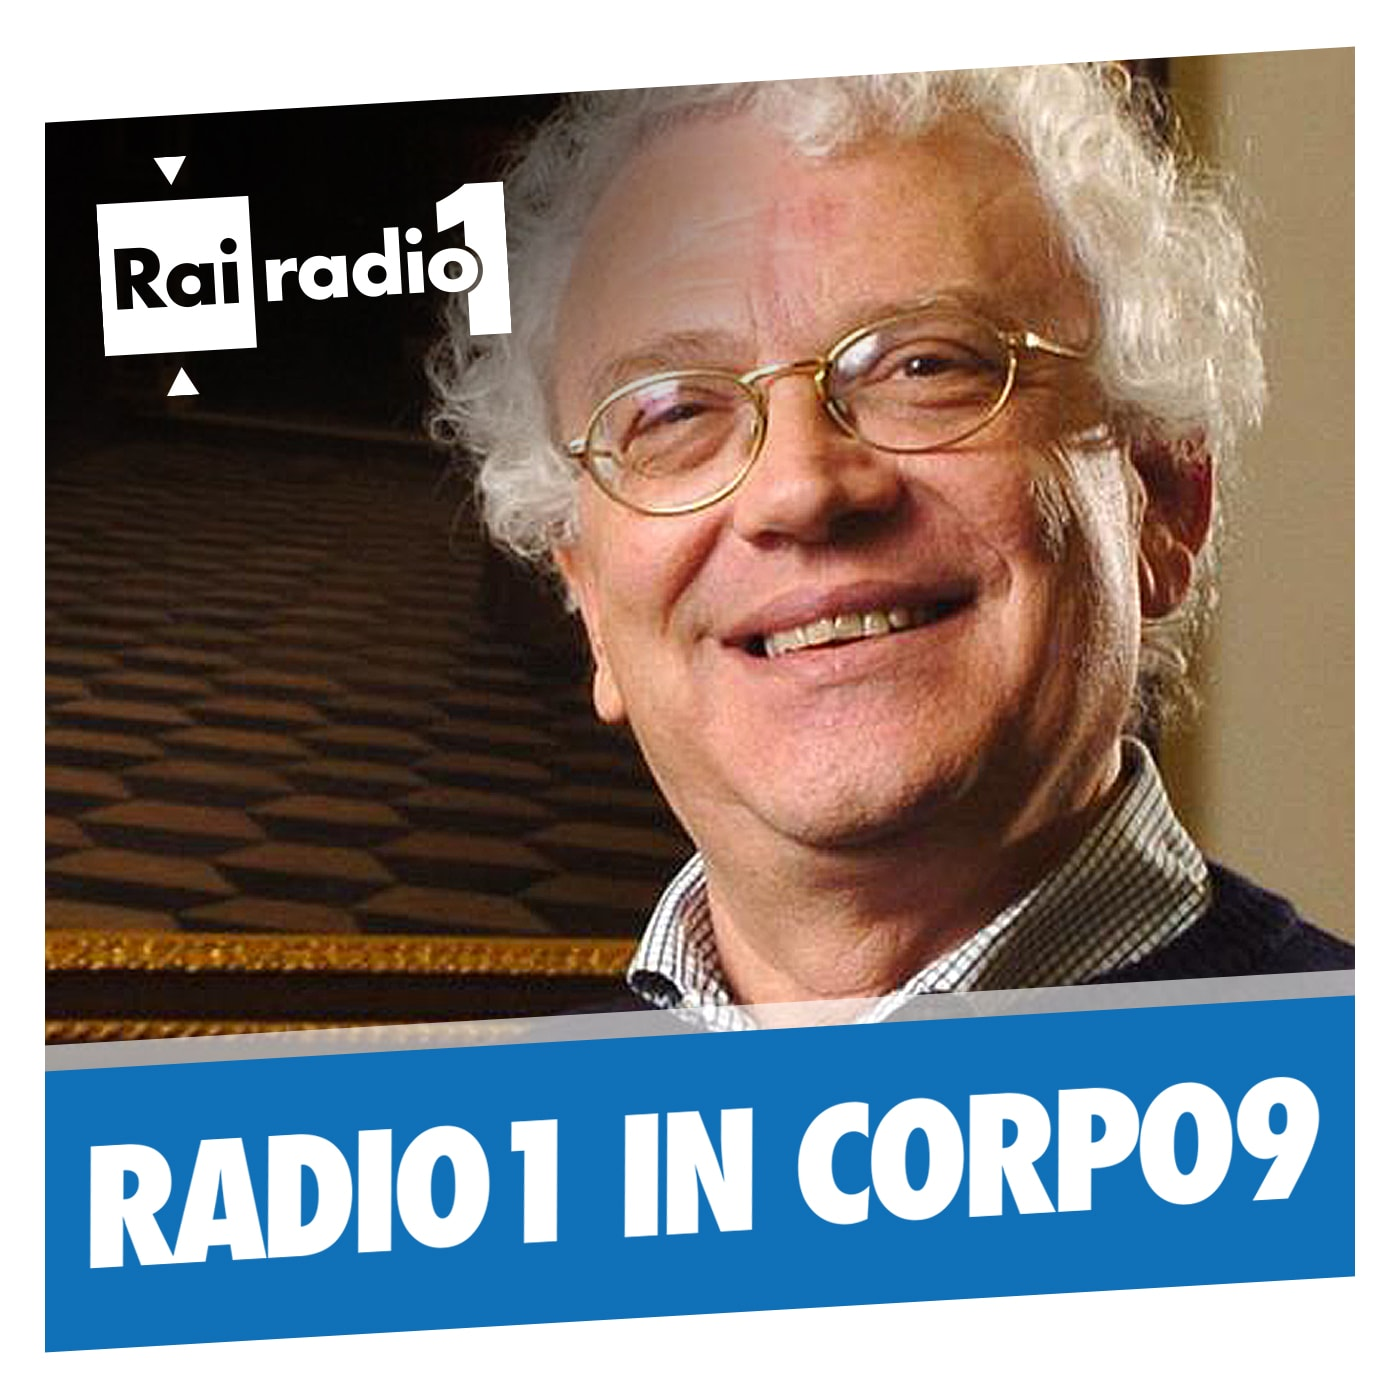 Radio1 in corpo nove